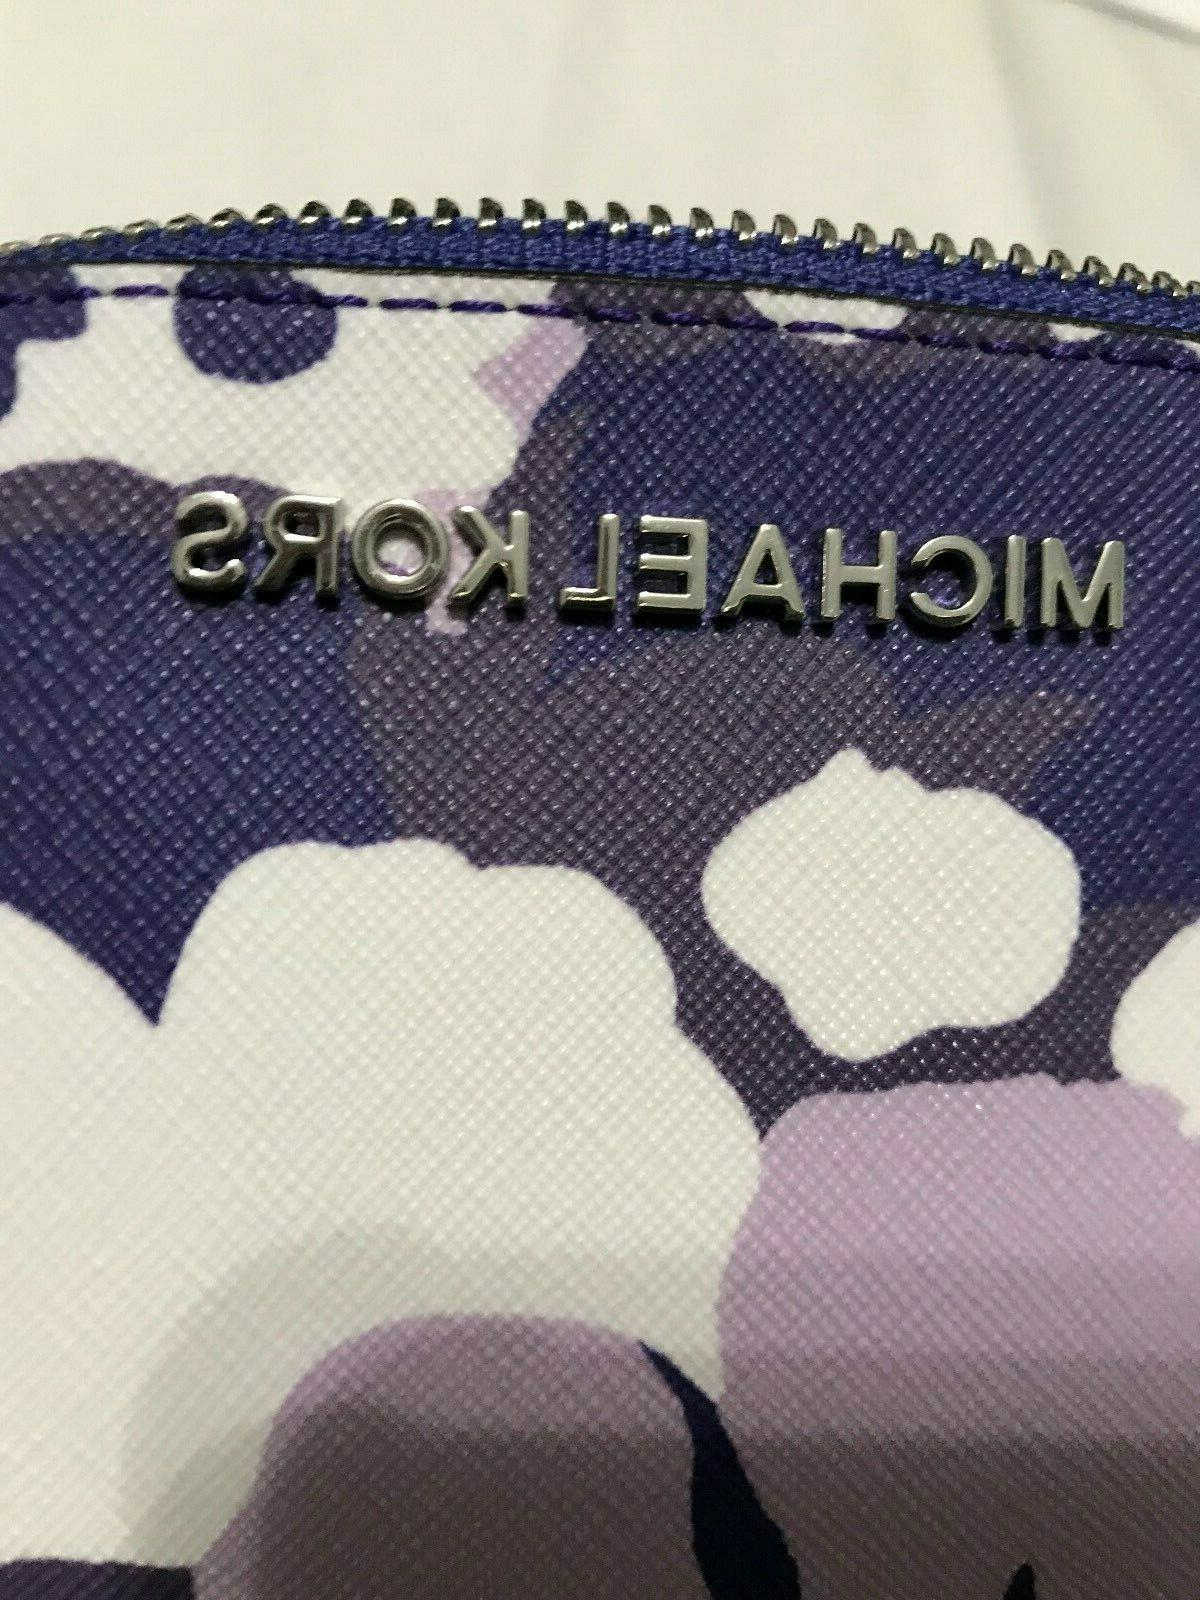 Michael Kors Jet Set Travel Pouch Cosmetic in Floral Saffiano $98